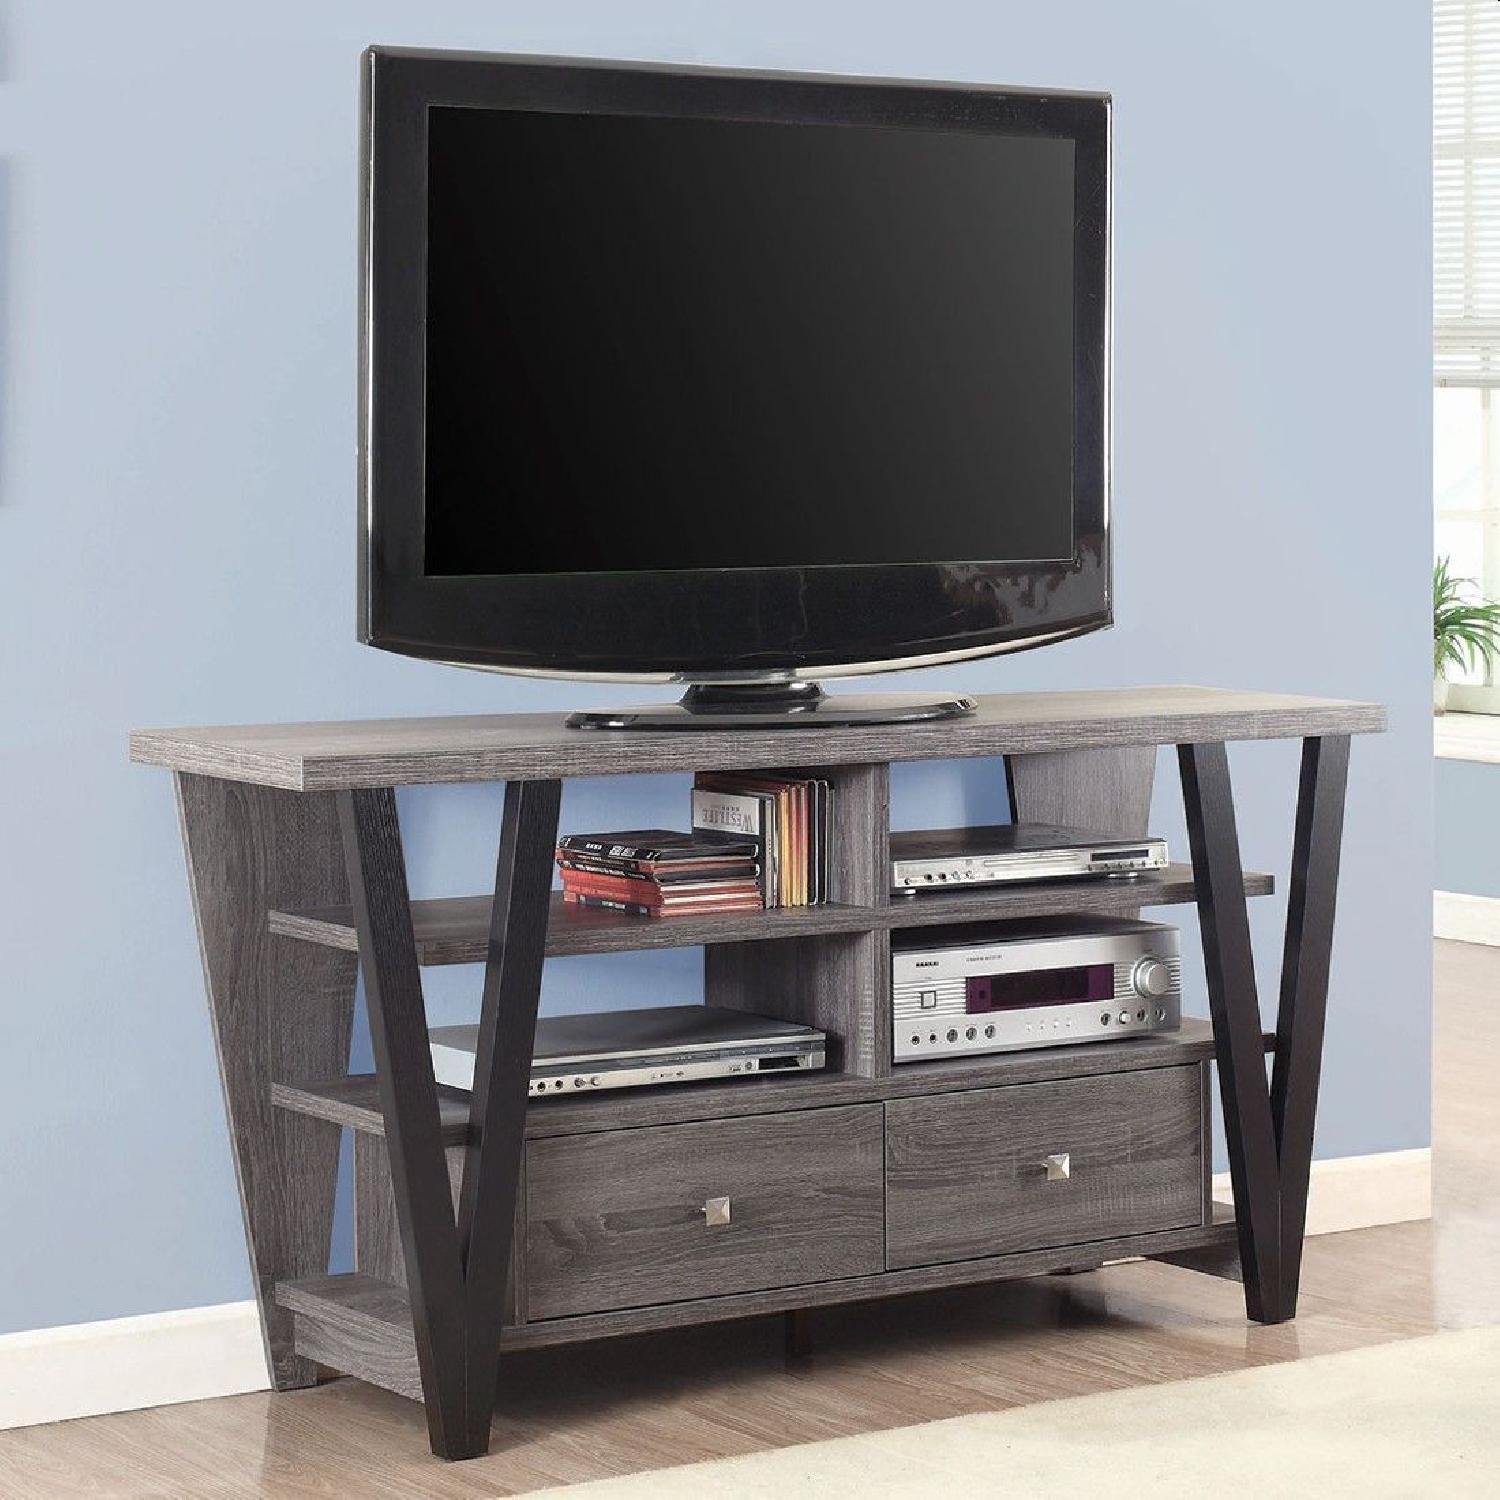 Modern TV Stand in Grey-Black Finish w/ Shelves & Drawers - image-2